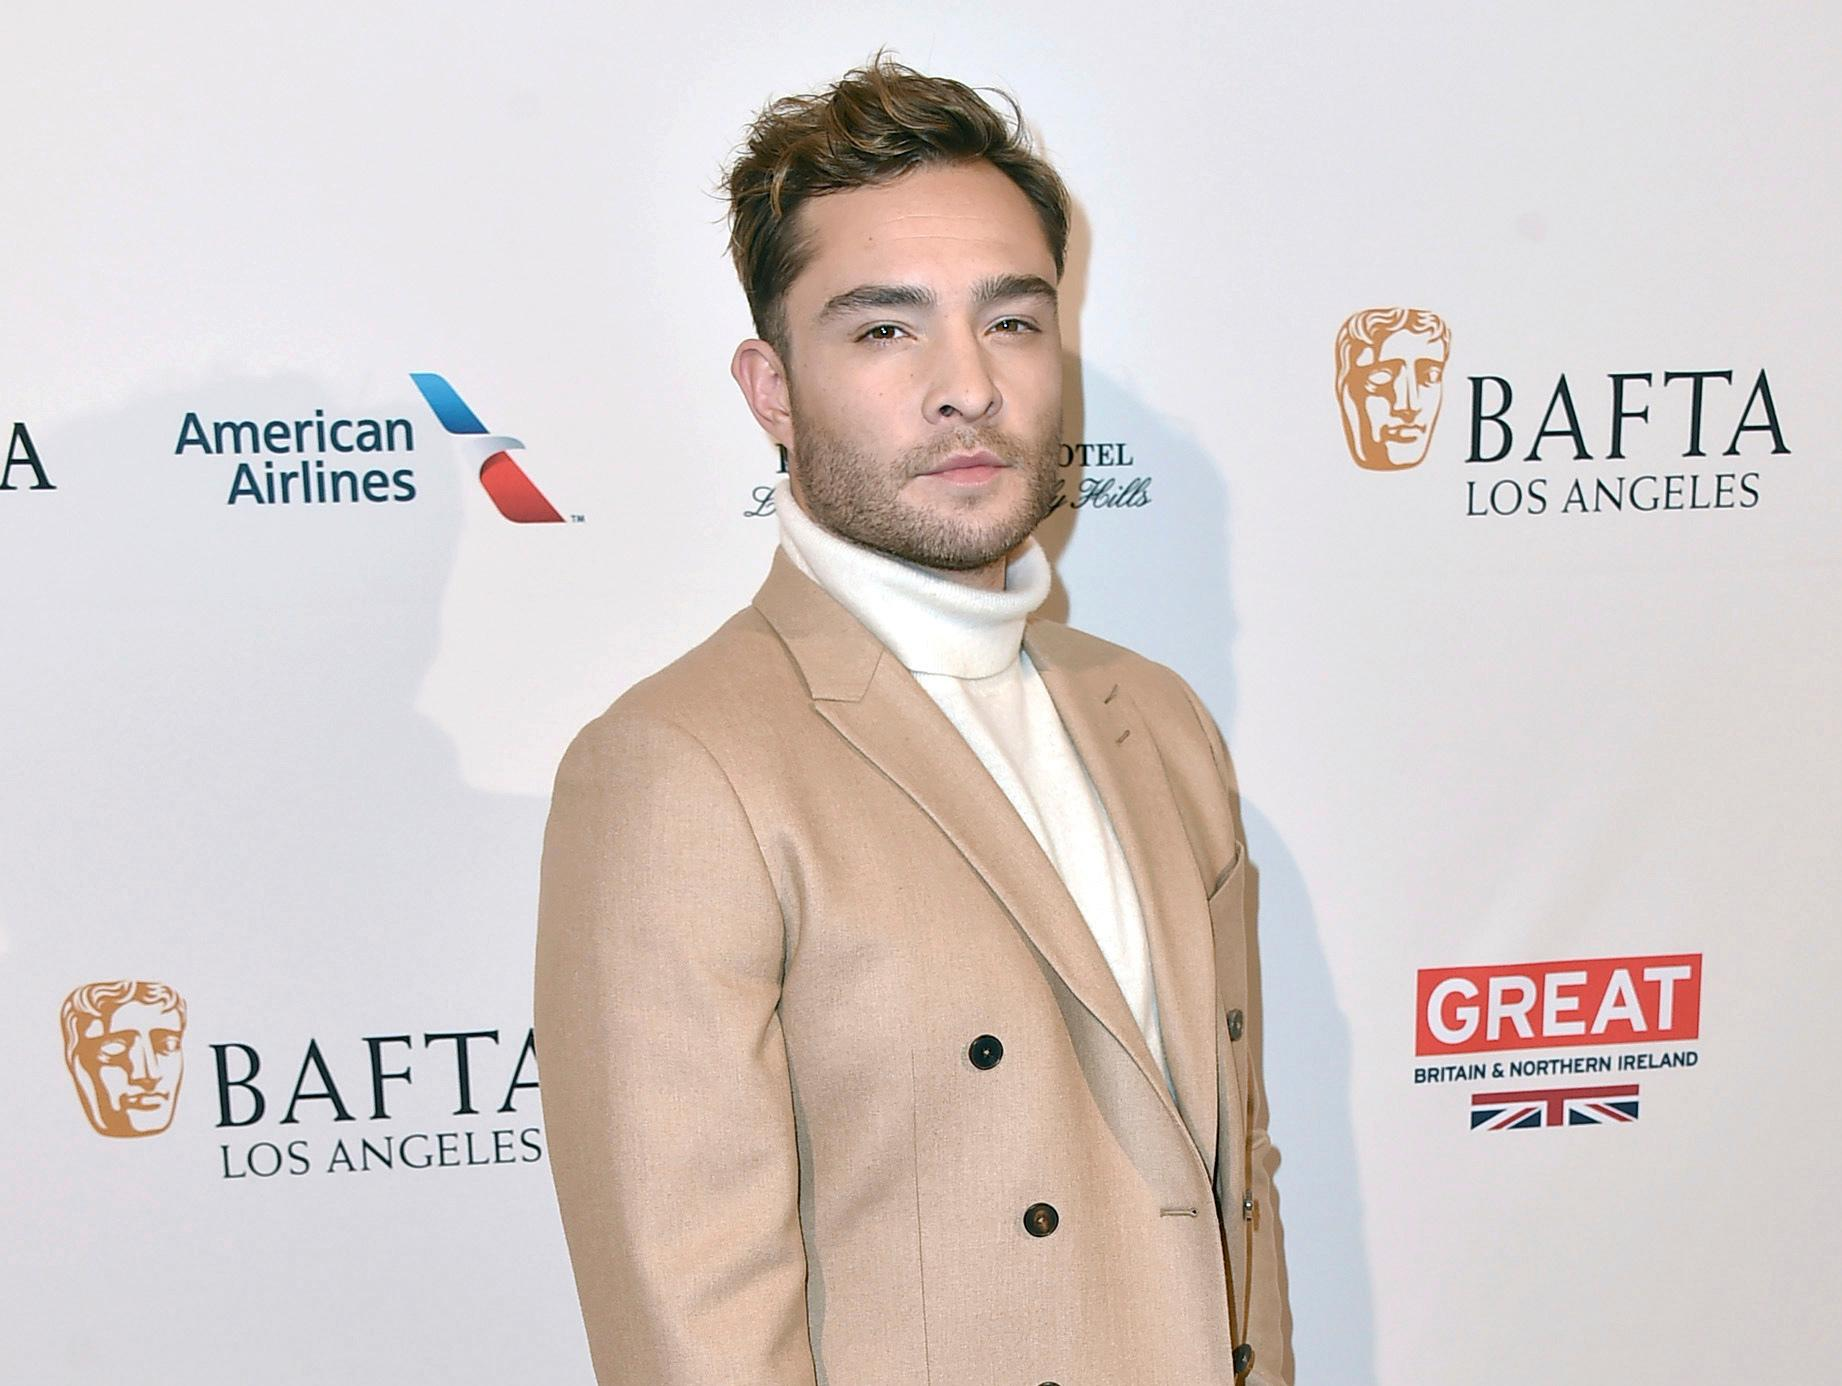 FILE - In this Jan. 9, 2016 file photo, Ed Westwick arrives at the BAFTA Awards Season Tea Party at the Four Seasons Hotel in Los Angeles. {&amp;nbsp;}(Photo by Jordan Strauss/Invision/AP, File)<p></p>